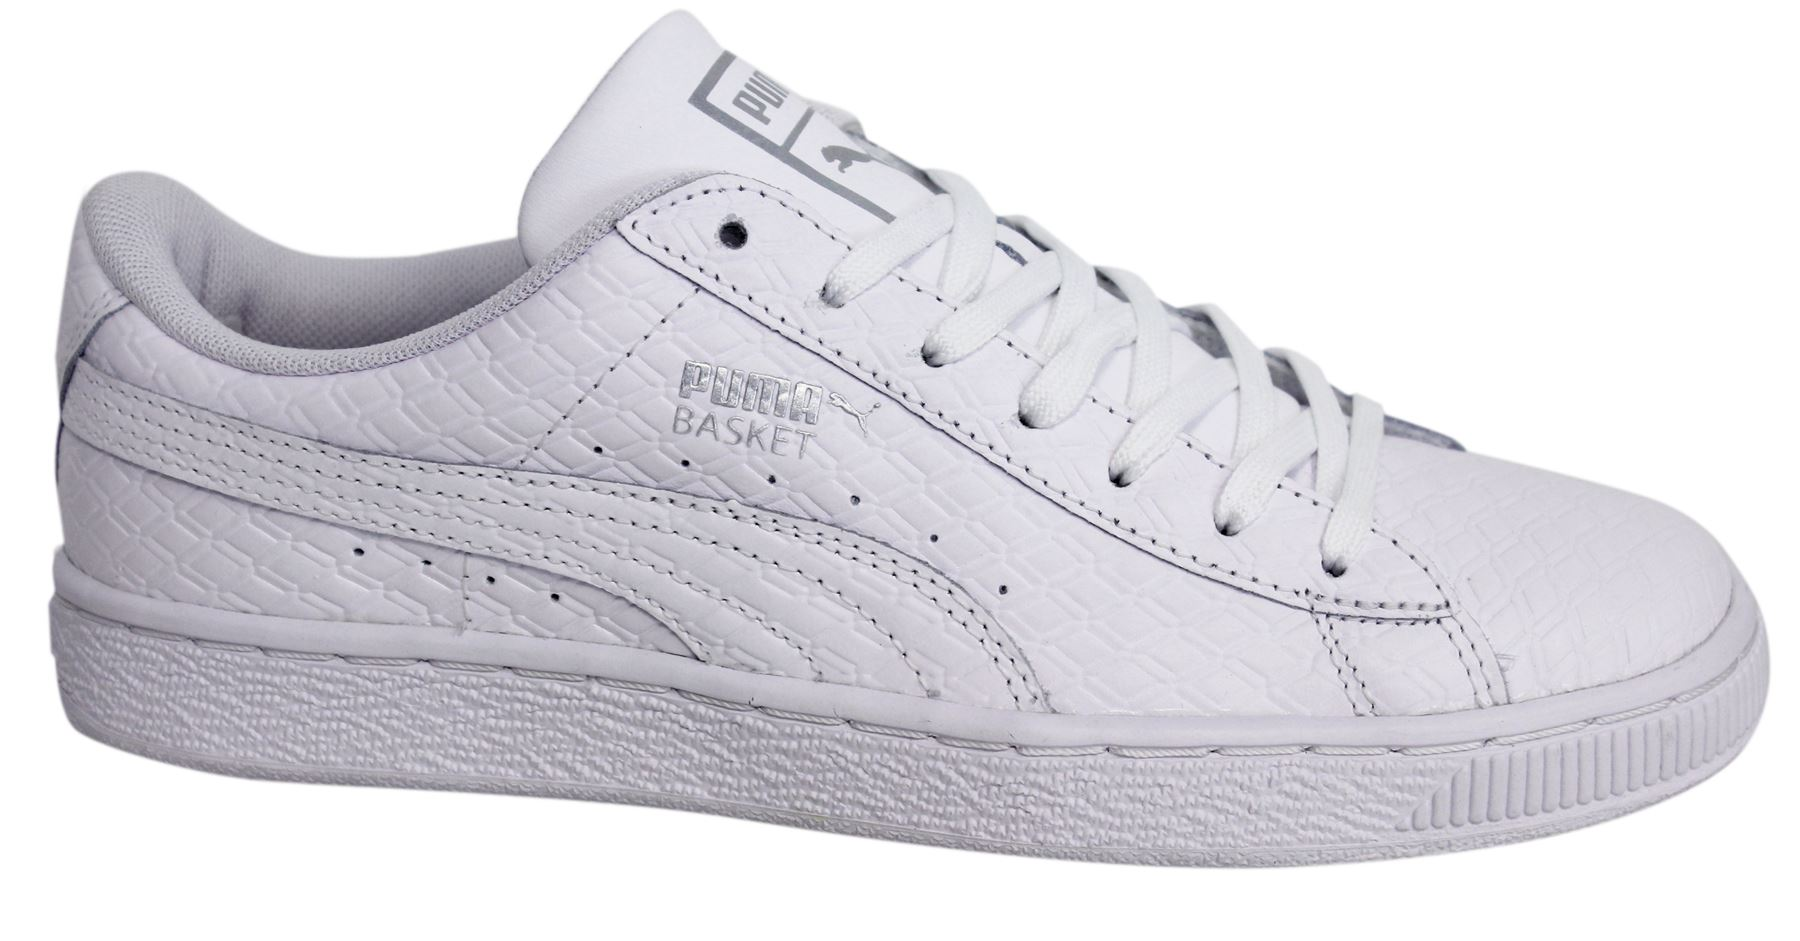 Puma Basket Classic B W Lace Up White Leather Mens Trainers 363075 01 D19 ce1149858